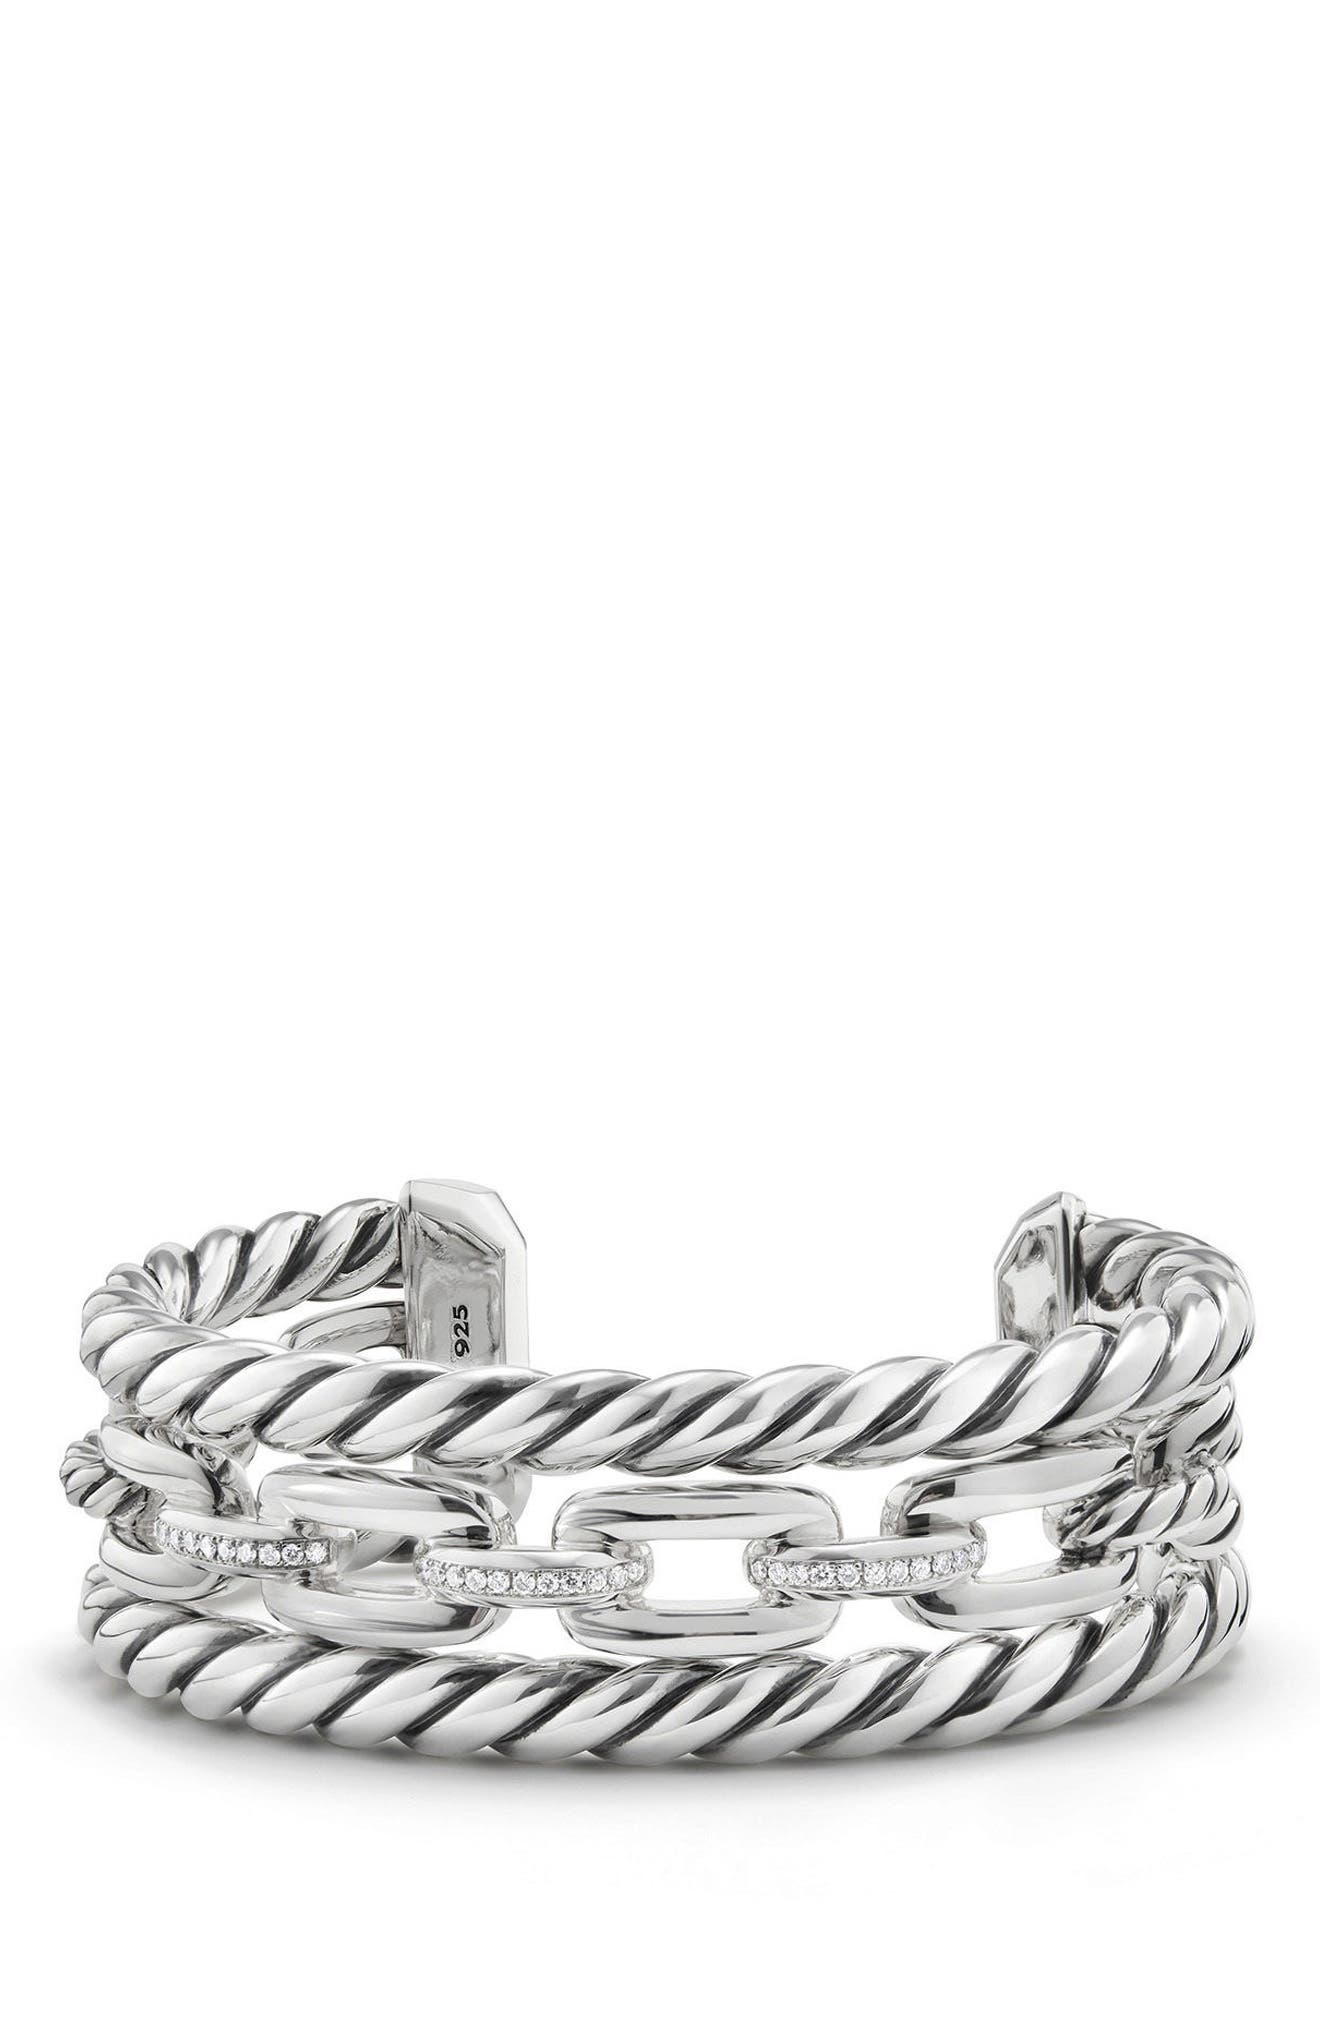 Wellesley Link Chain Three-Row Cuff with Diamonds,                         Main,                         color, Silver